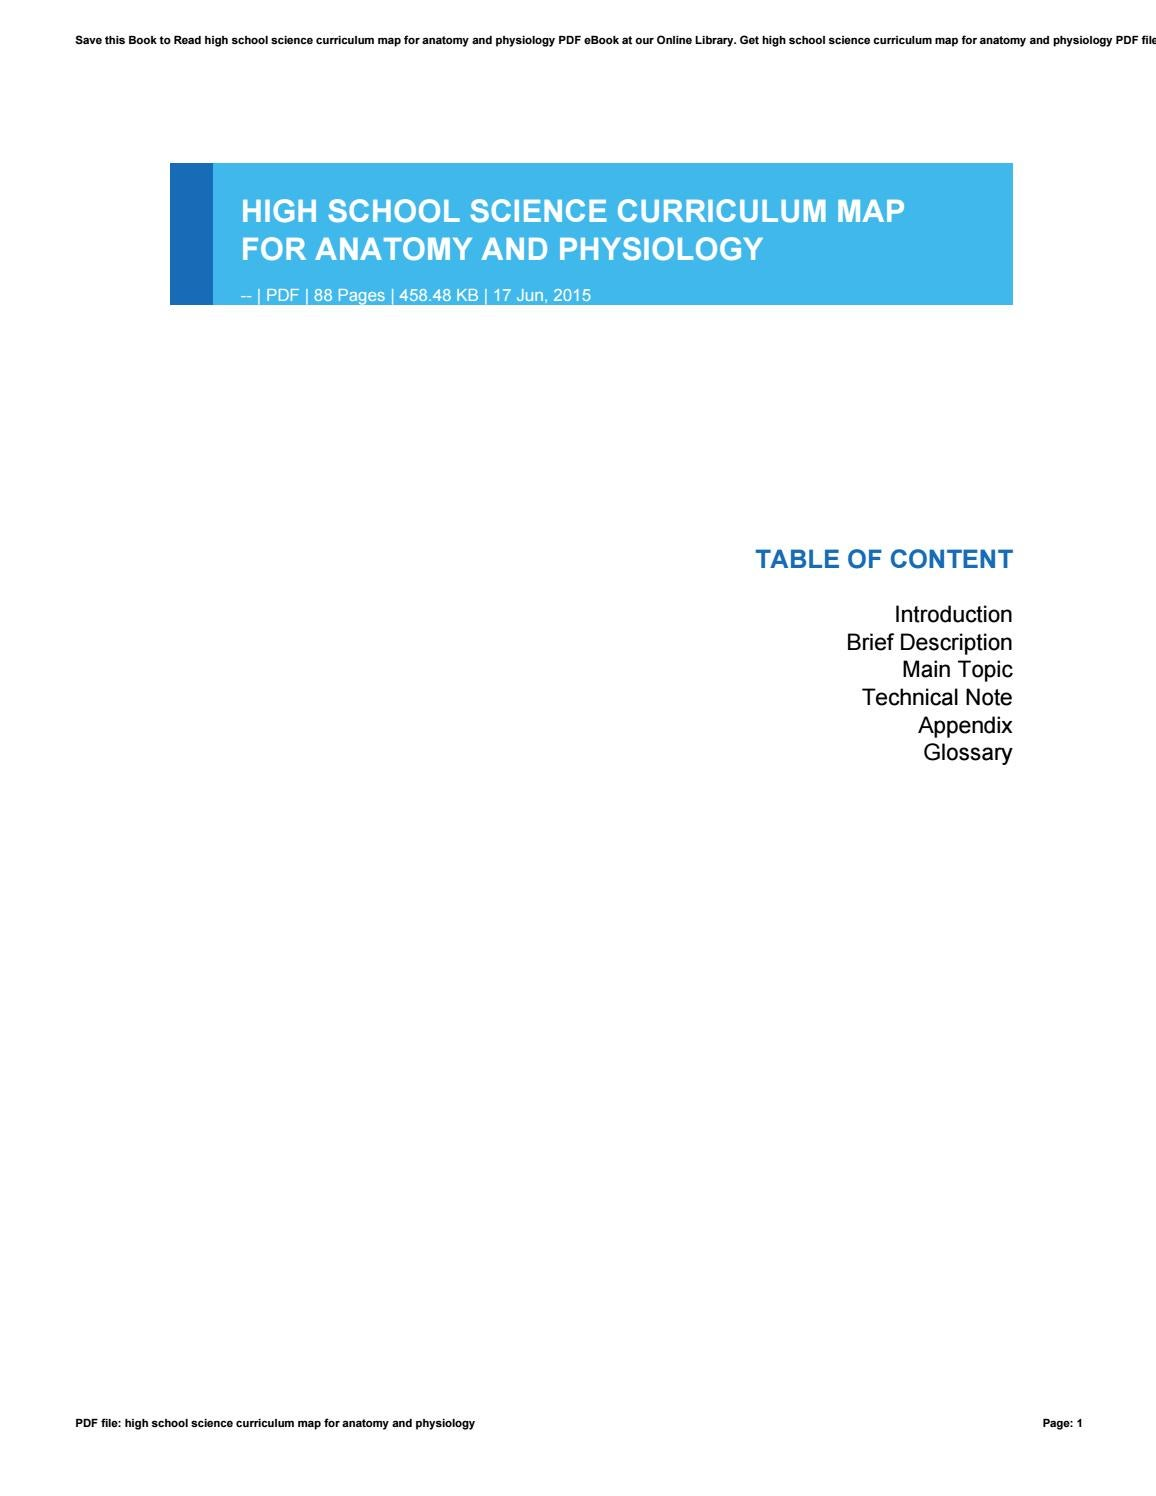 High school science curriculum map for anatomy and physiology by ...